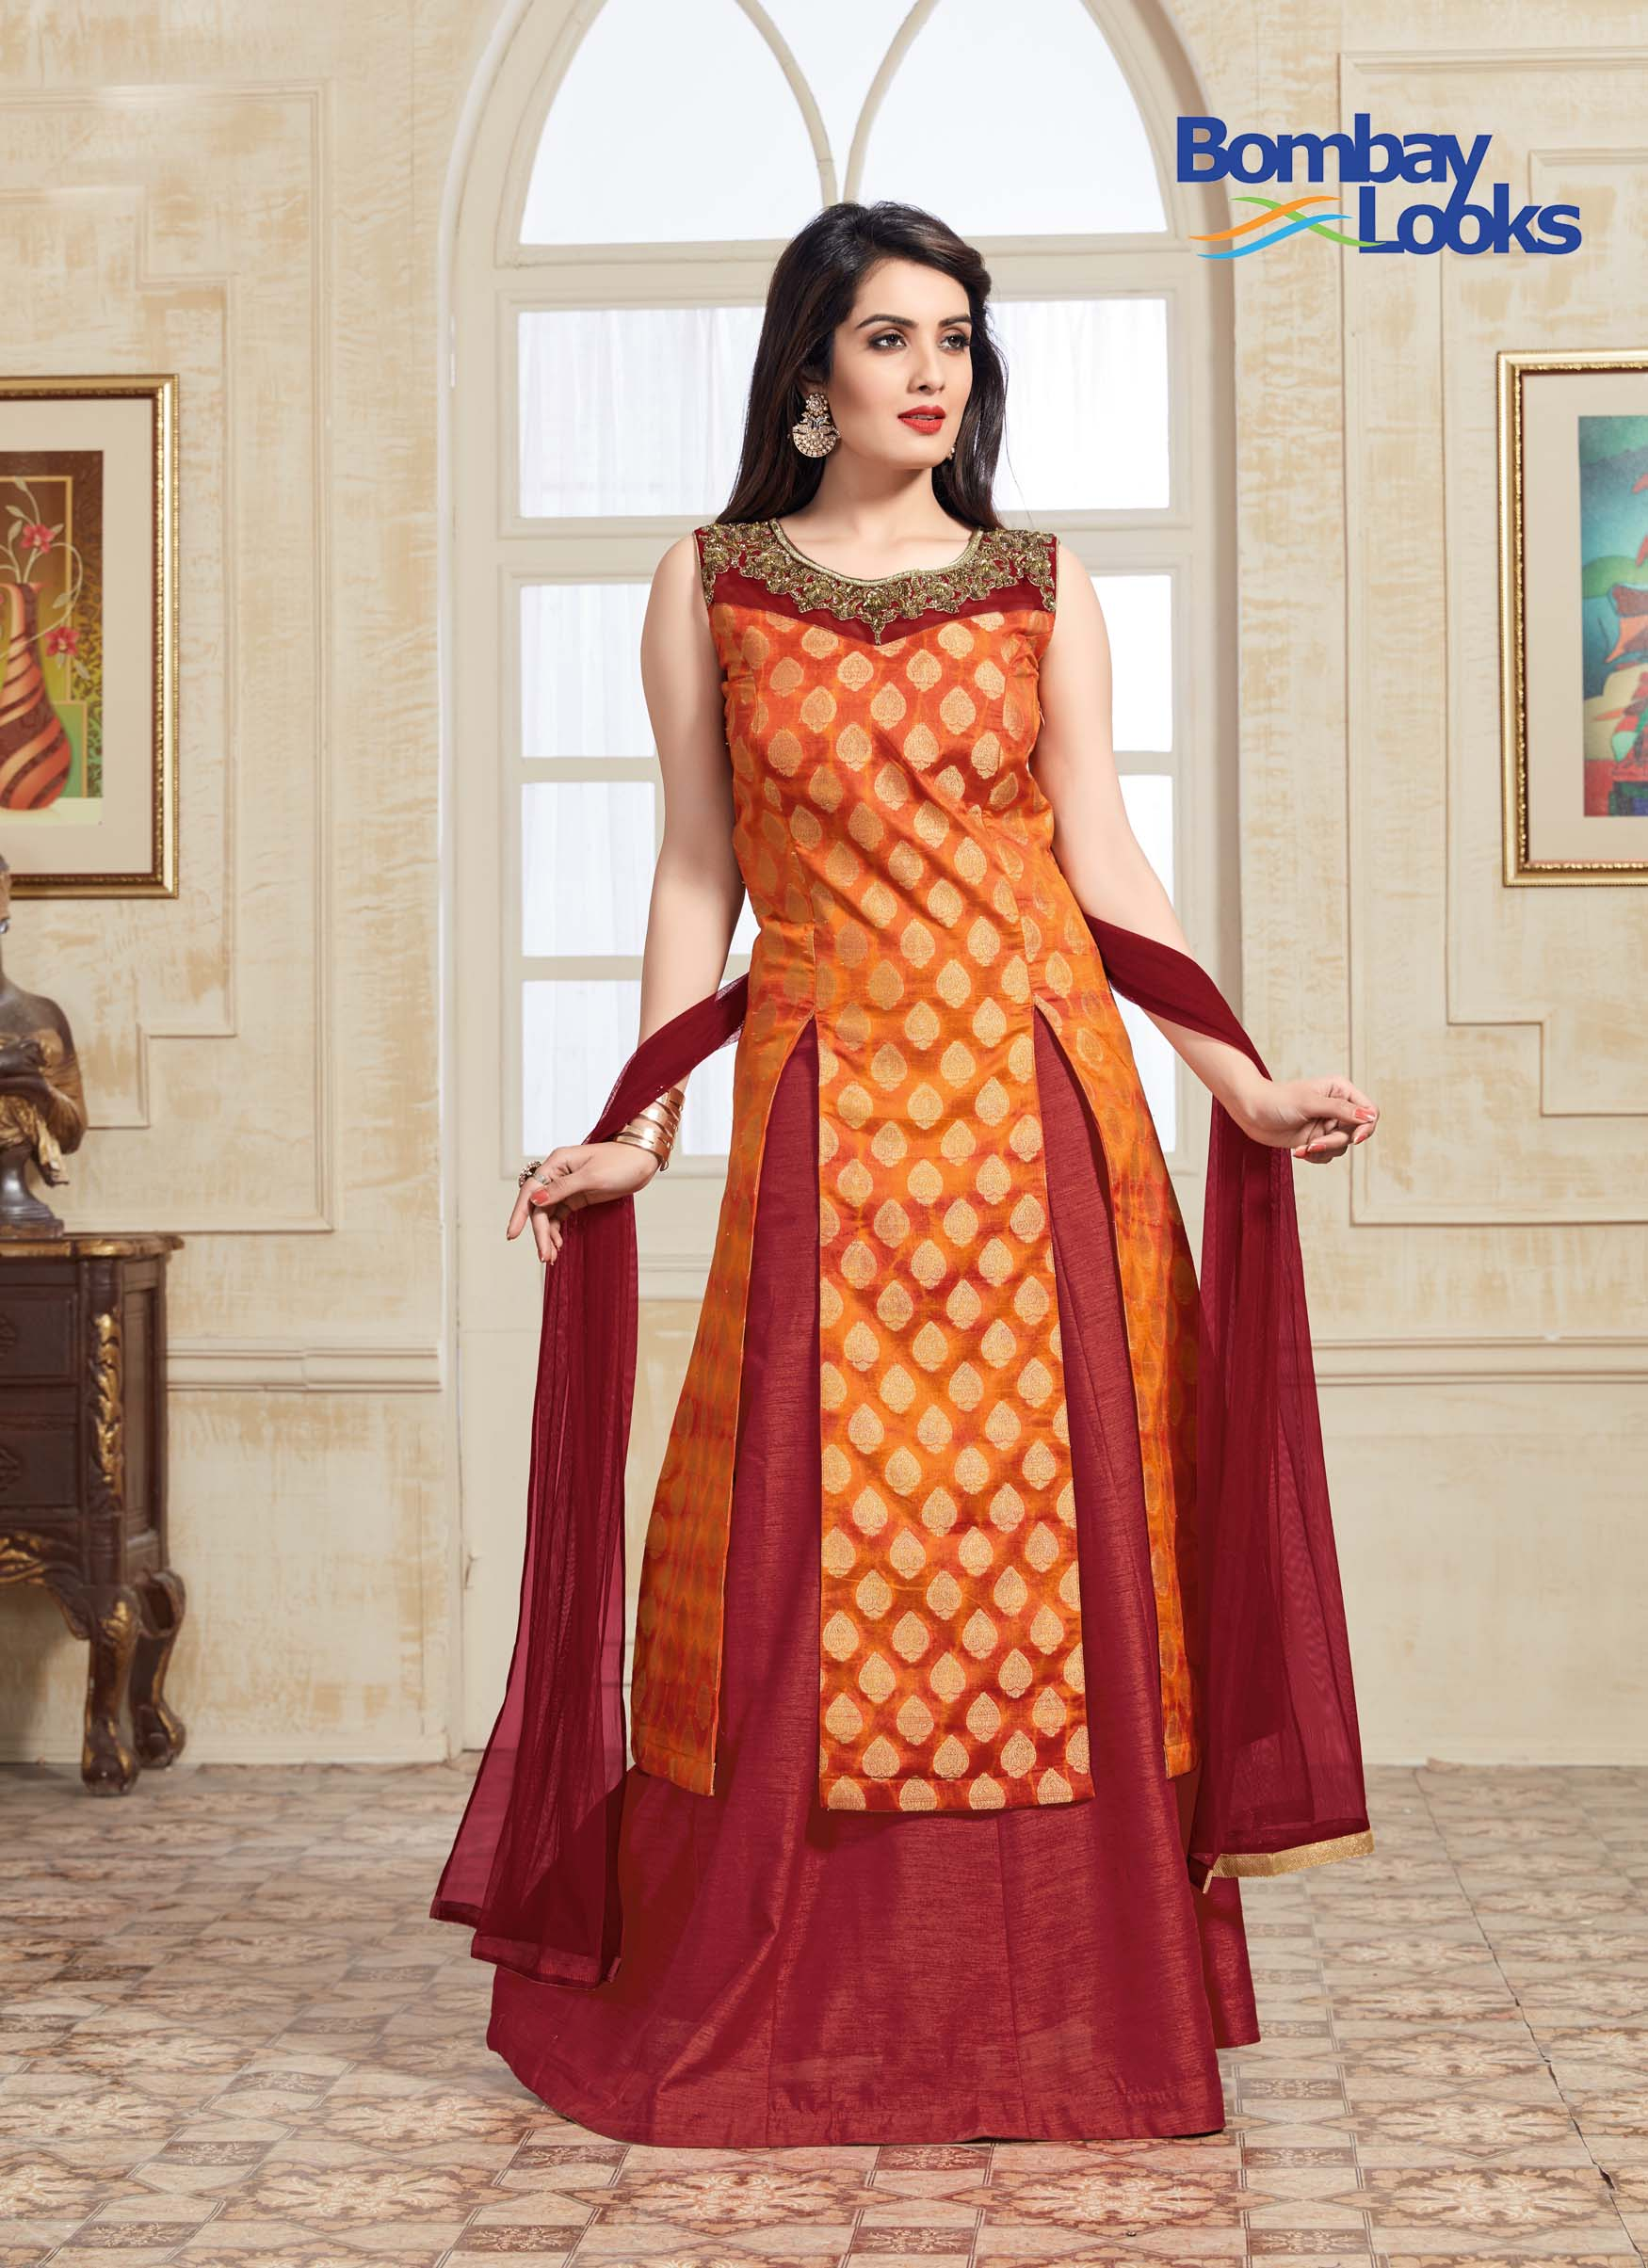 Vibrant split styled kurta in orange with golden brocade lehenga and pencil trousers